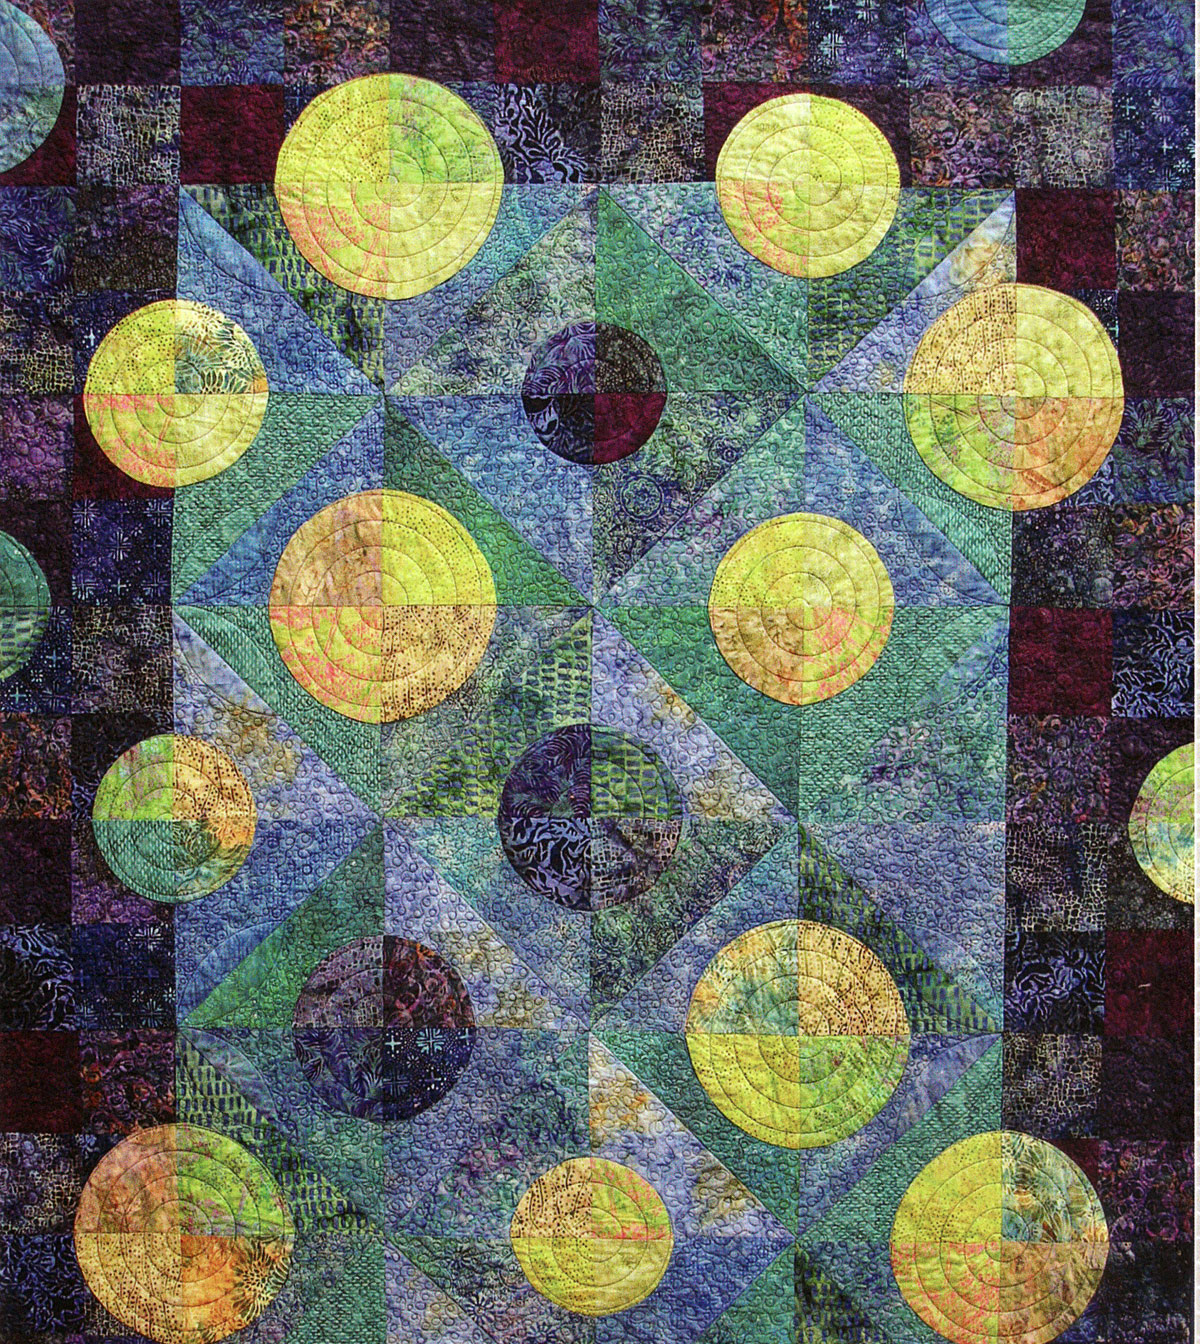 blue-moon-quilt-sewing-pattern-Saginaw-st-quilts-1